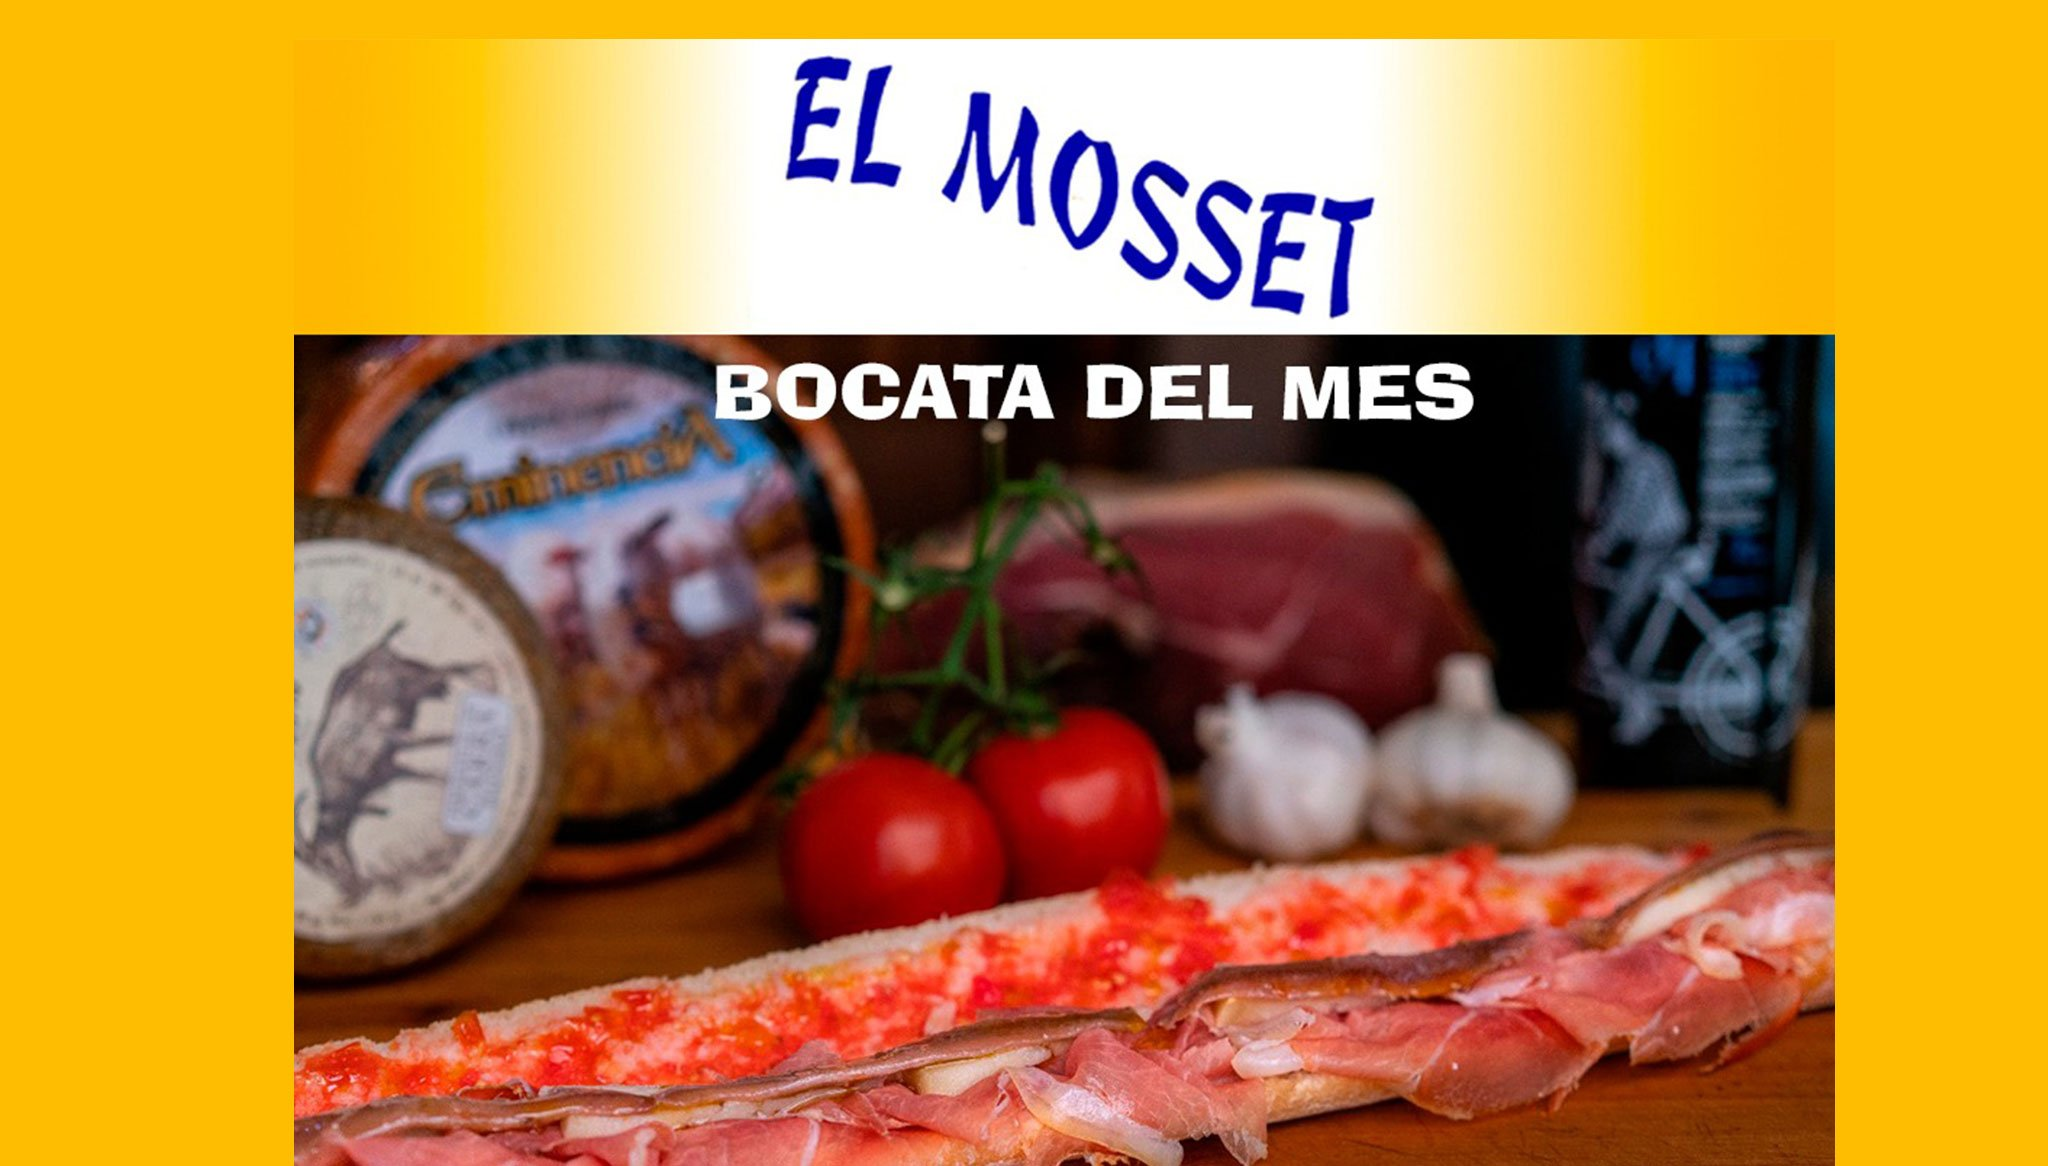 El Mosset raffle: one lunch for two